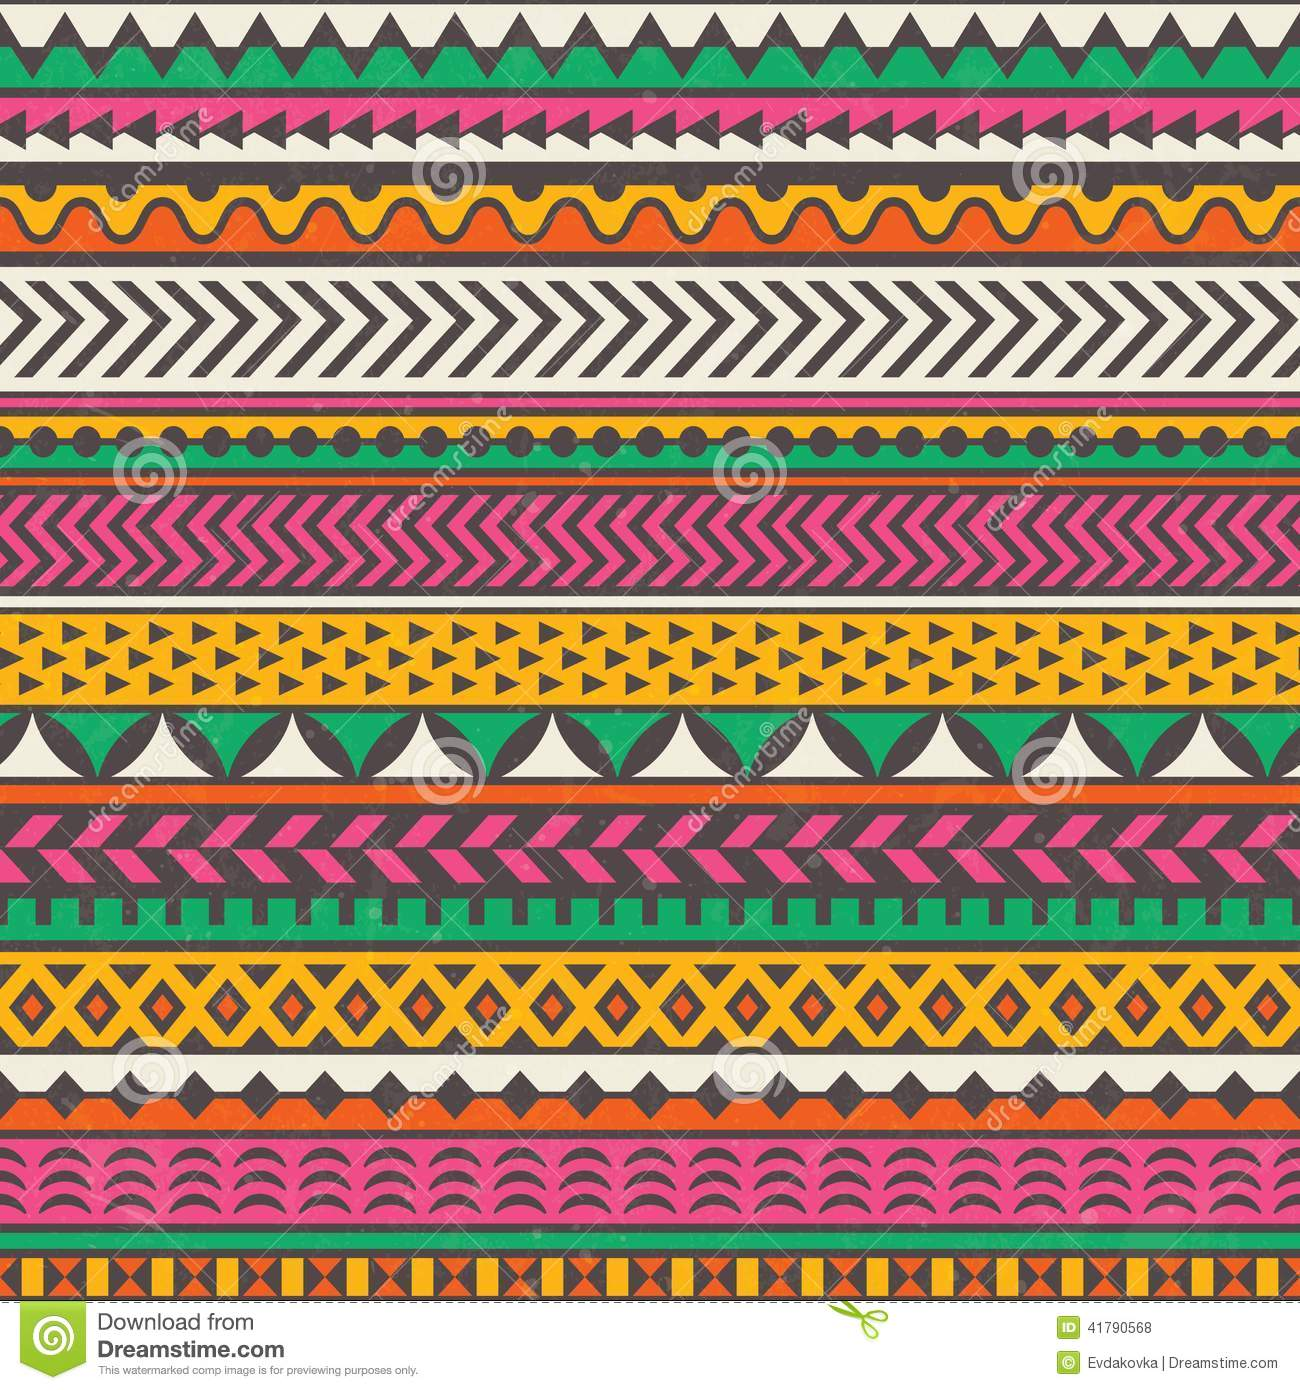 African Animal Wallpaper Border Colorful Tribal Print Vector Seamless Background Stock